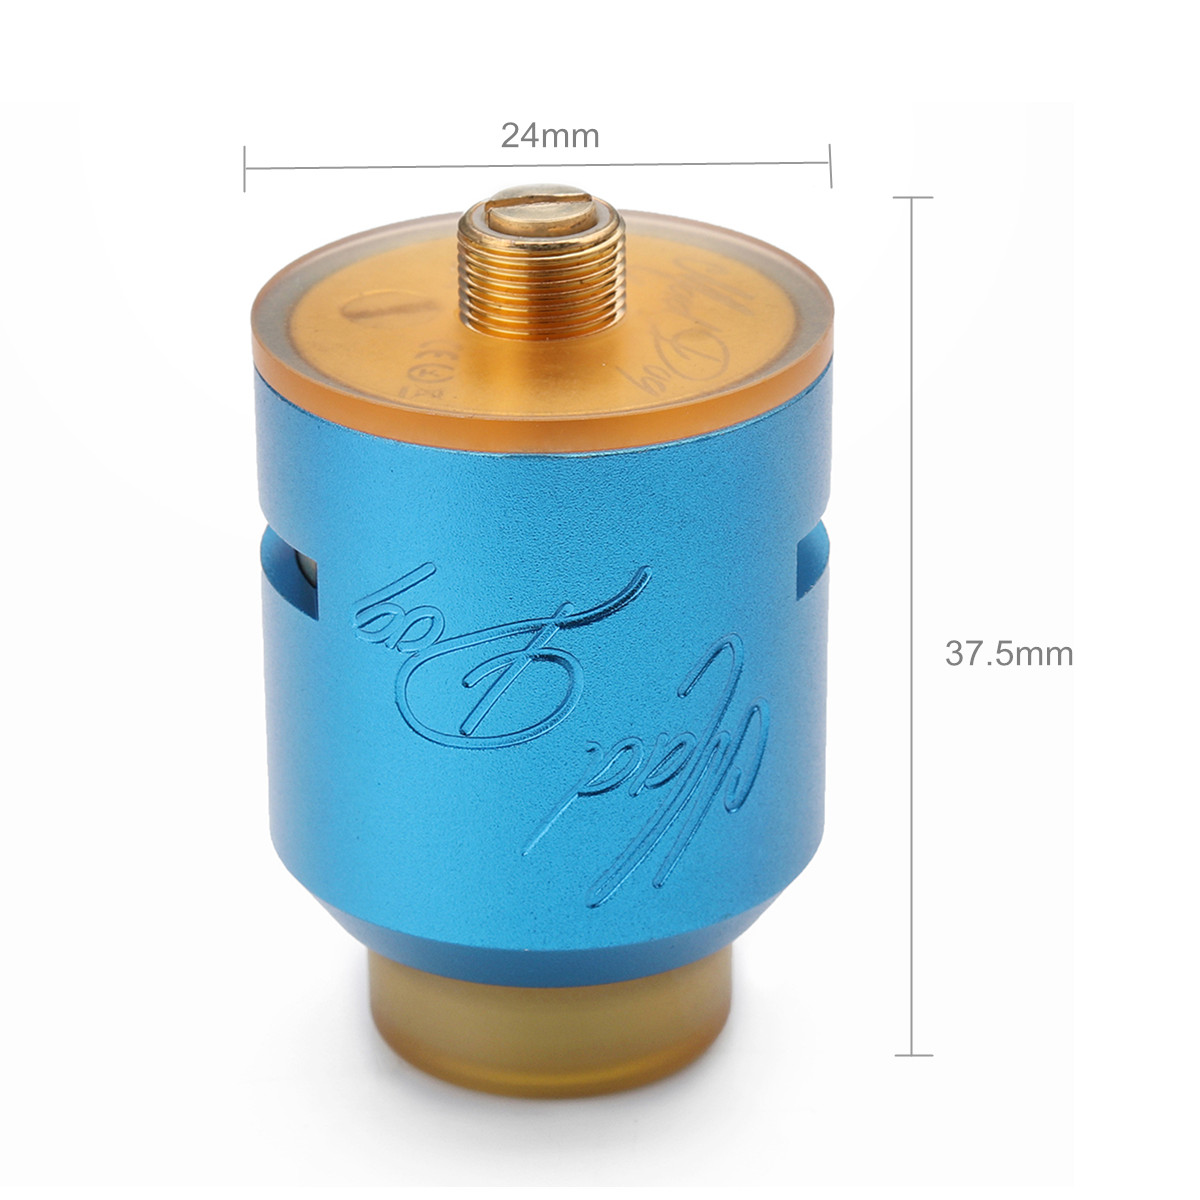 24mm Tank Desire Mad Dog RDA Atomizer Tools Kit Black/Red/Gold/Blue/Silver